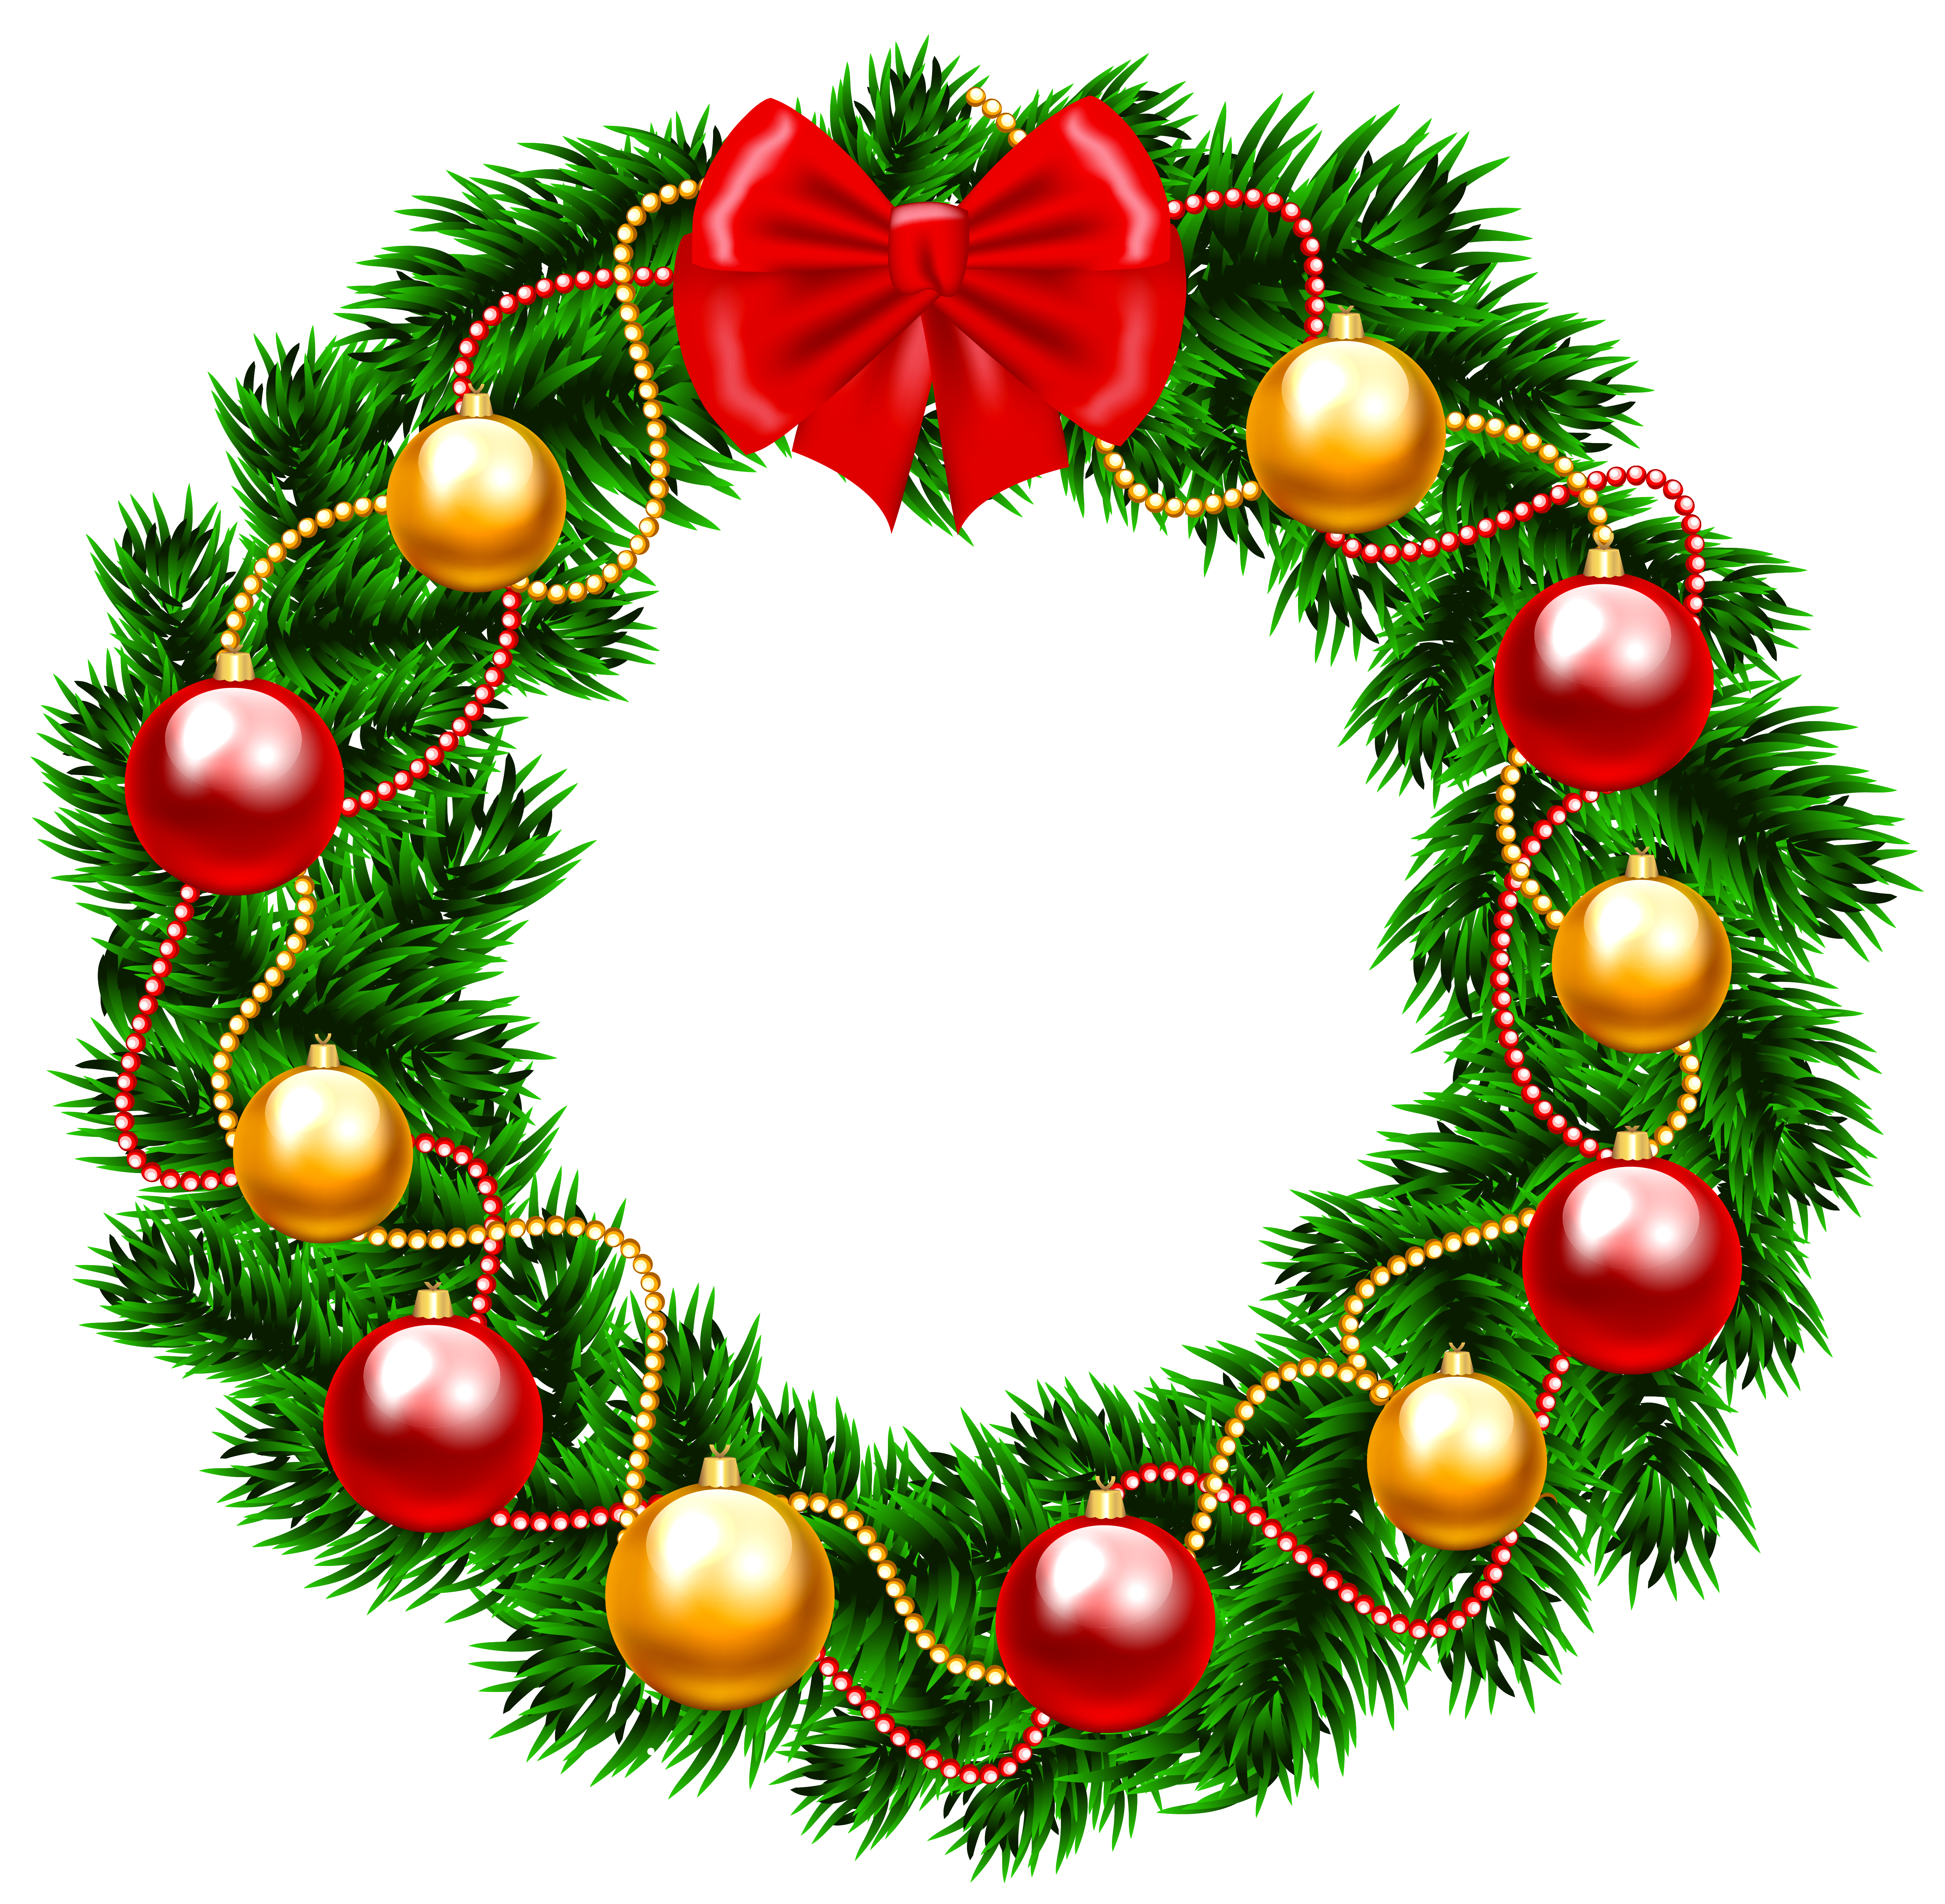 Craft clipart holiday craft. Holley christmas wreath pencil